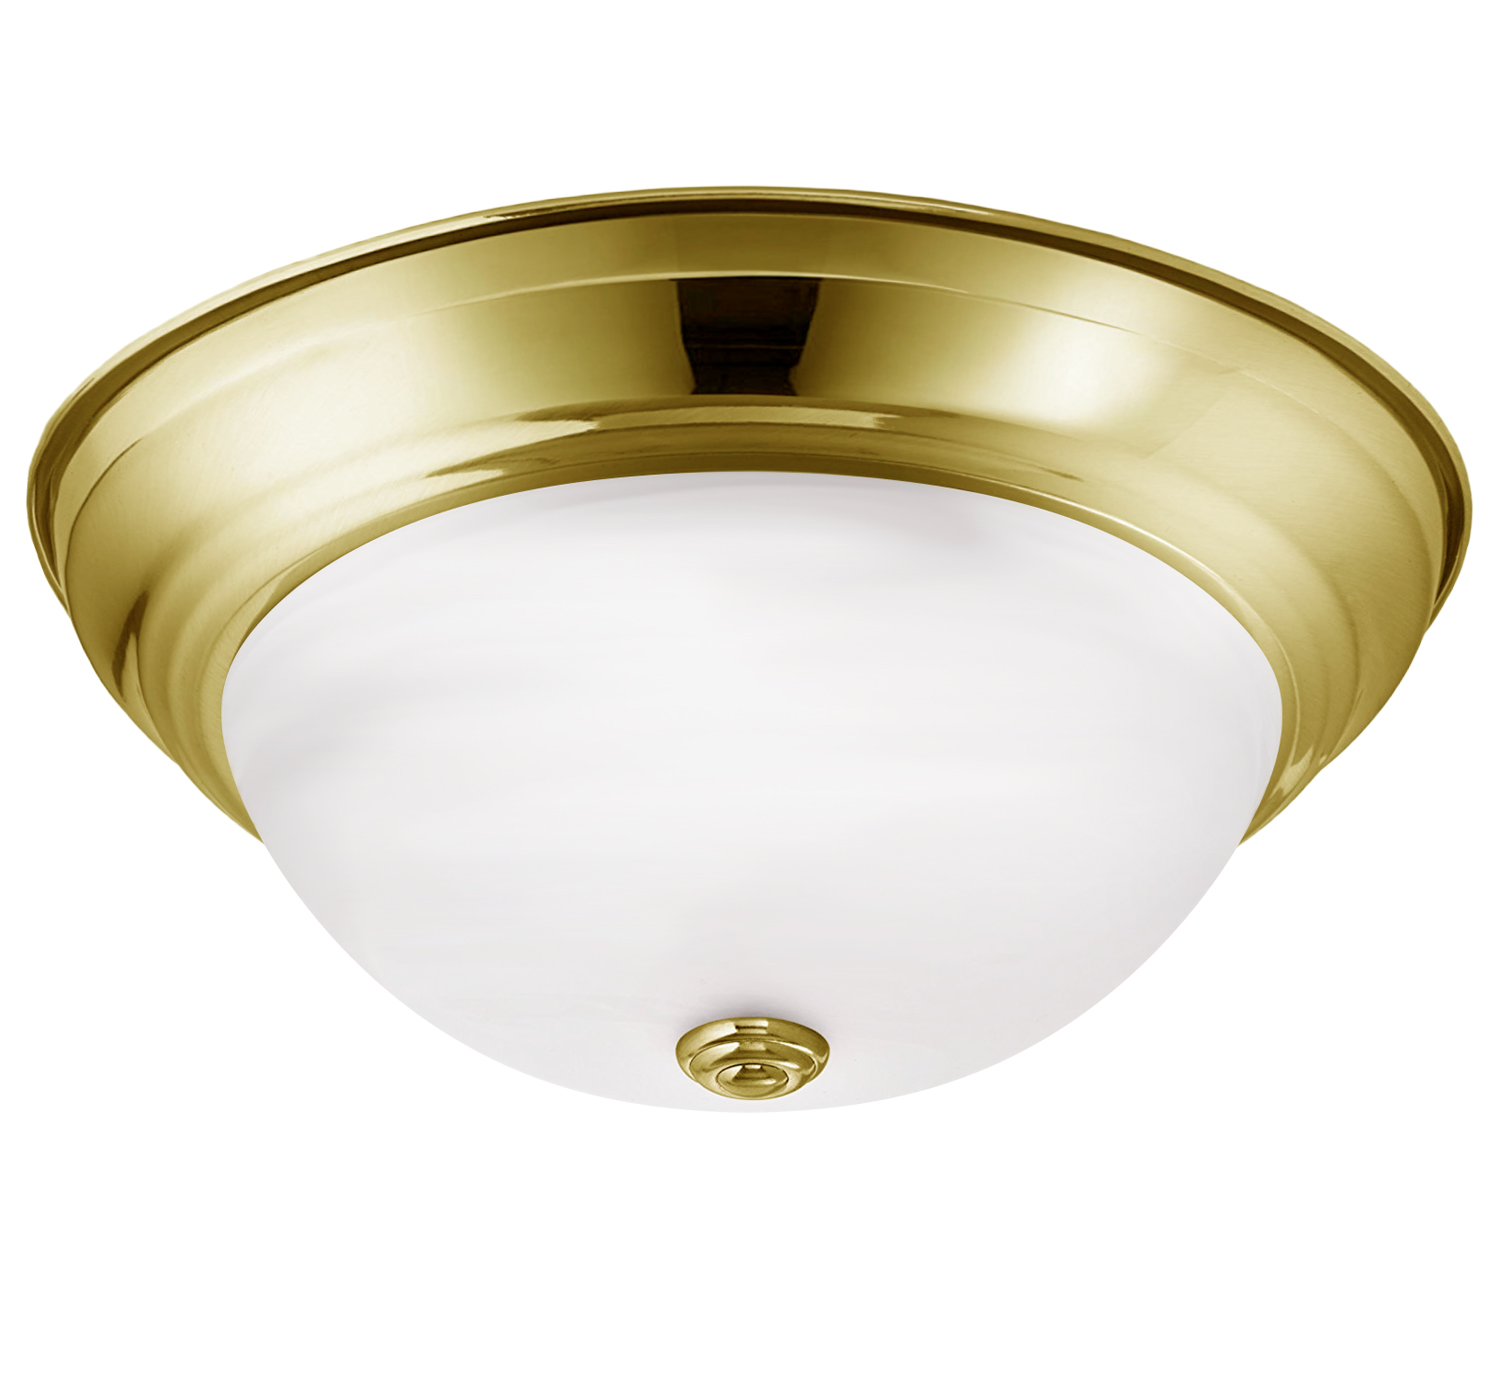 gold flush mount light black luxrite led dome ceiling light gold flush mount fixture 13inch 3000k 13inch